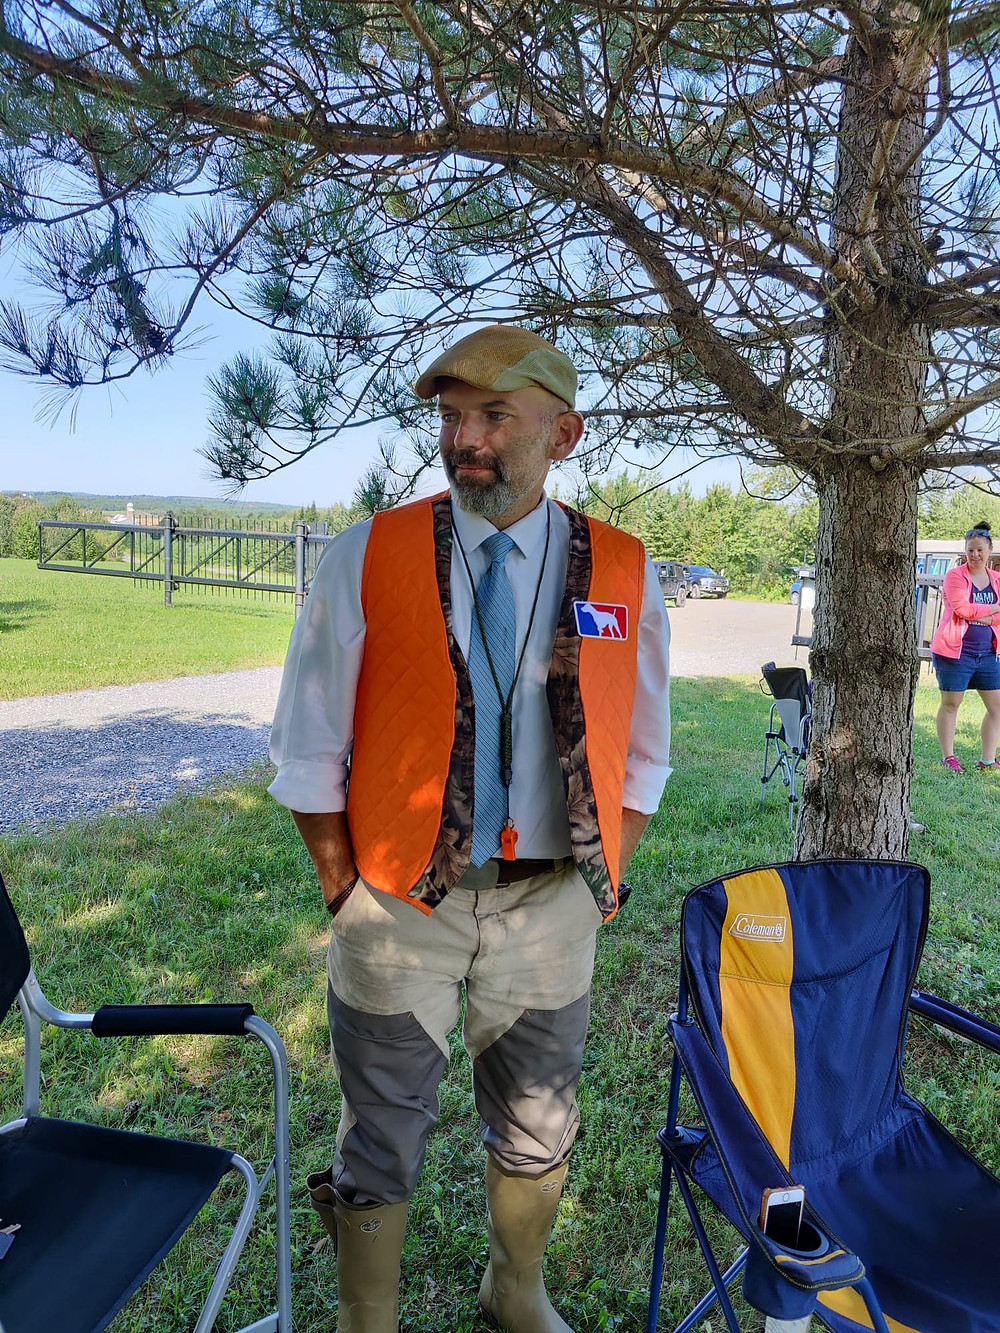 Me wearing my hunting vest at Mobby's NAVHDA UT test. Notice that I'm wearing my lucky tie as well.  My hunting dogs. chiens de chasse. Tests. NAVHDA